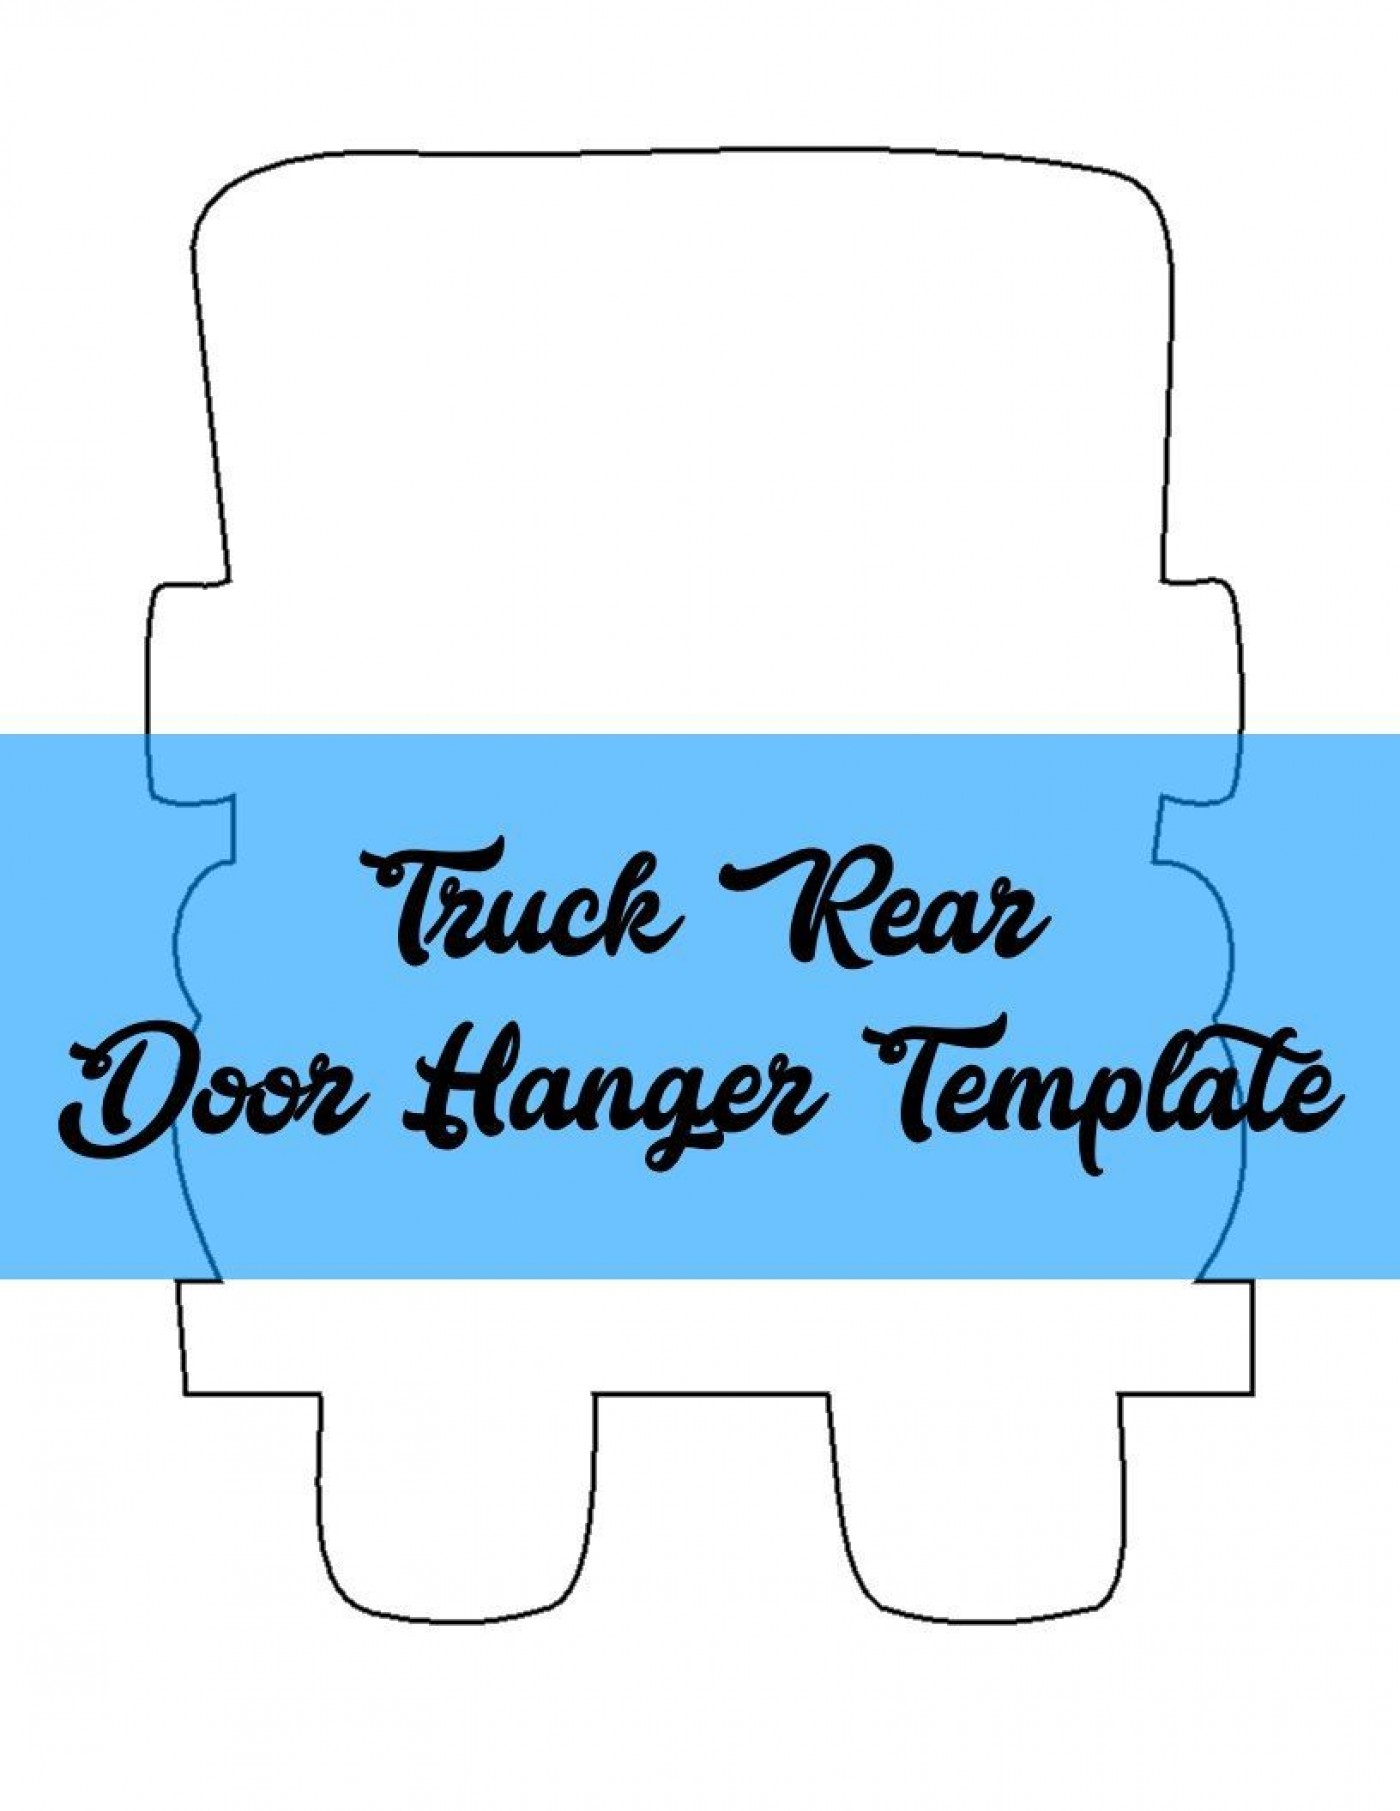 009 Remarkable Free Printable Template For Door Hanger High Definition 1400